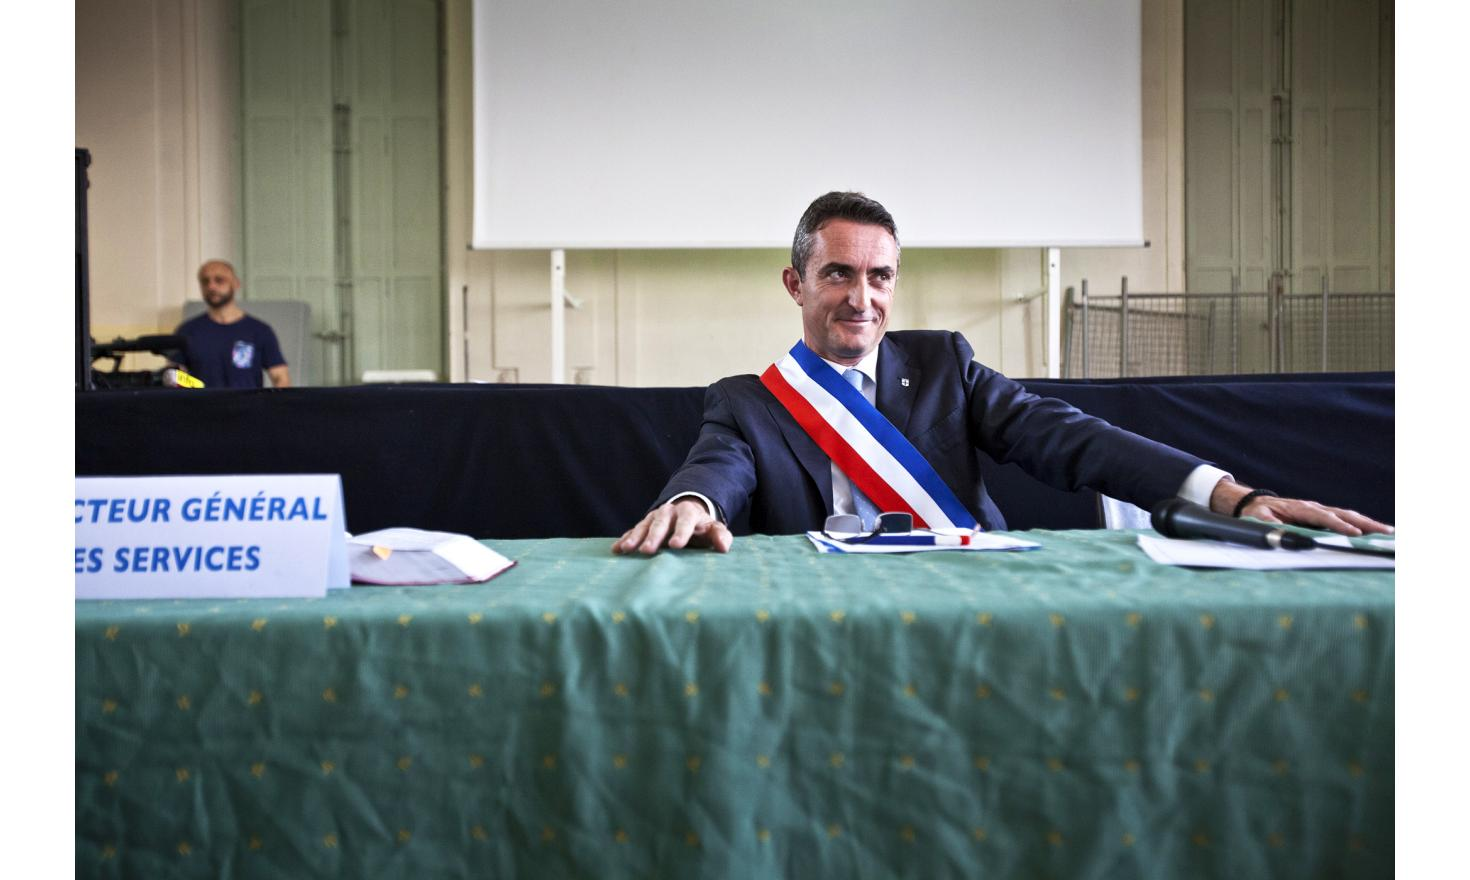 Marseille, April 11, 2014. Stephane Ravier has been elected. He is the new mayor.